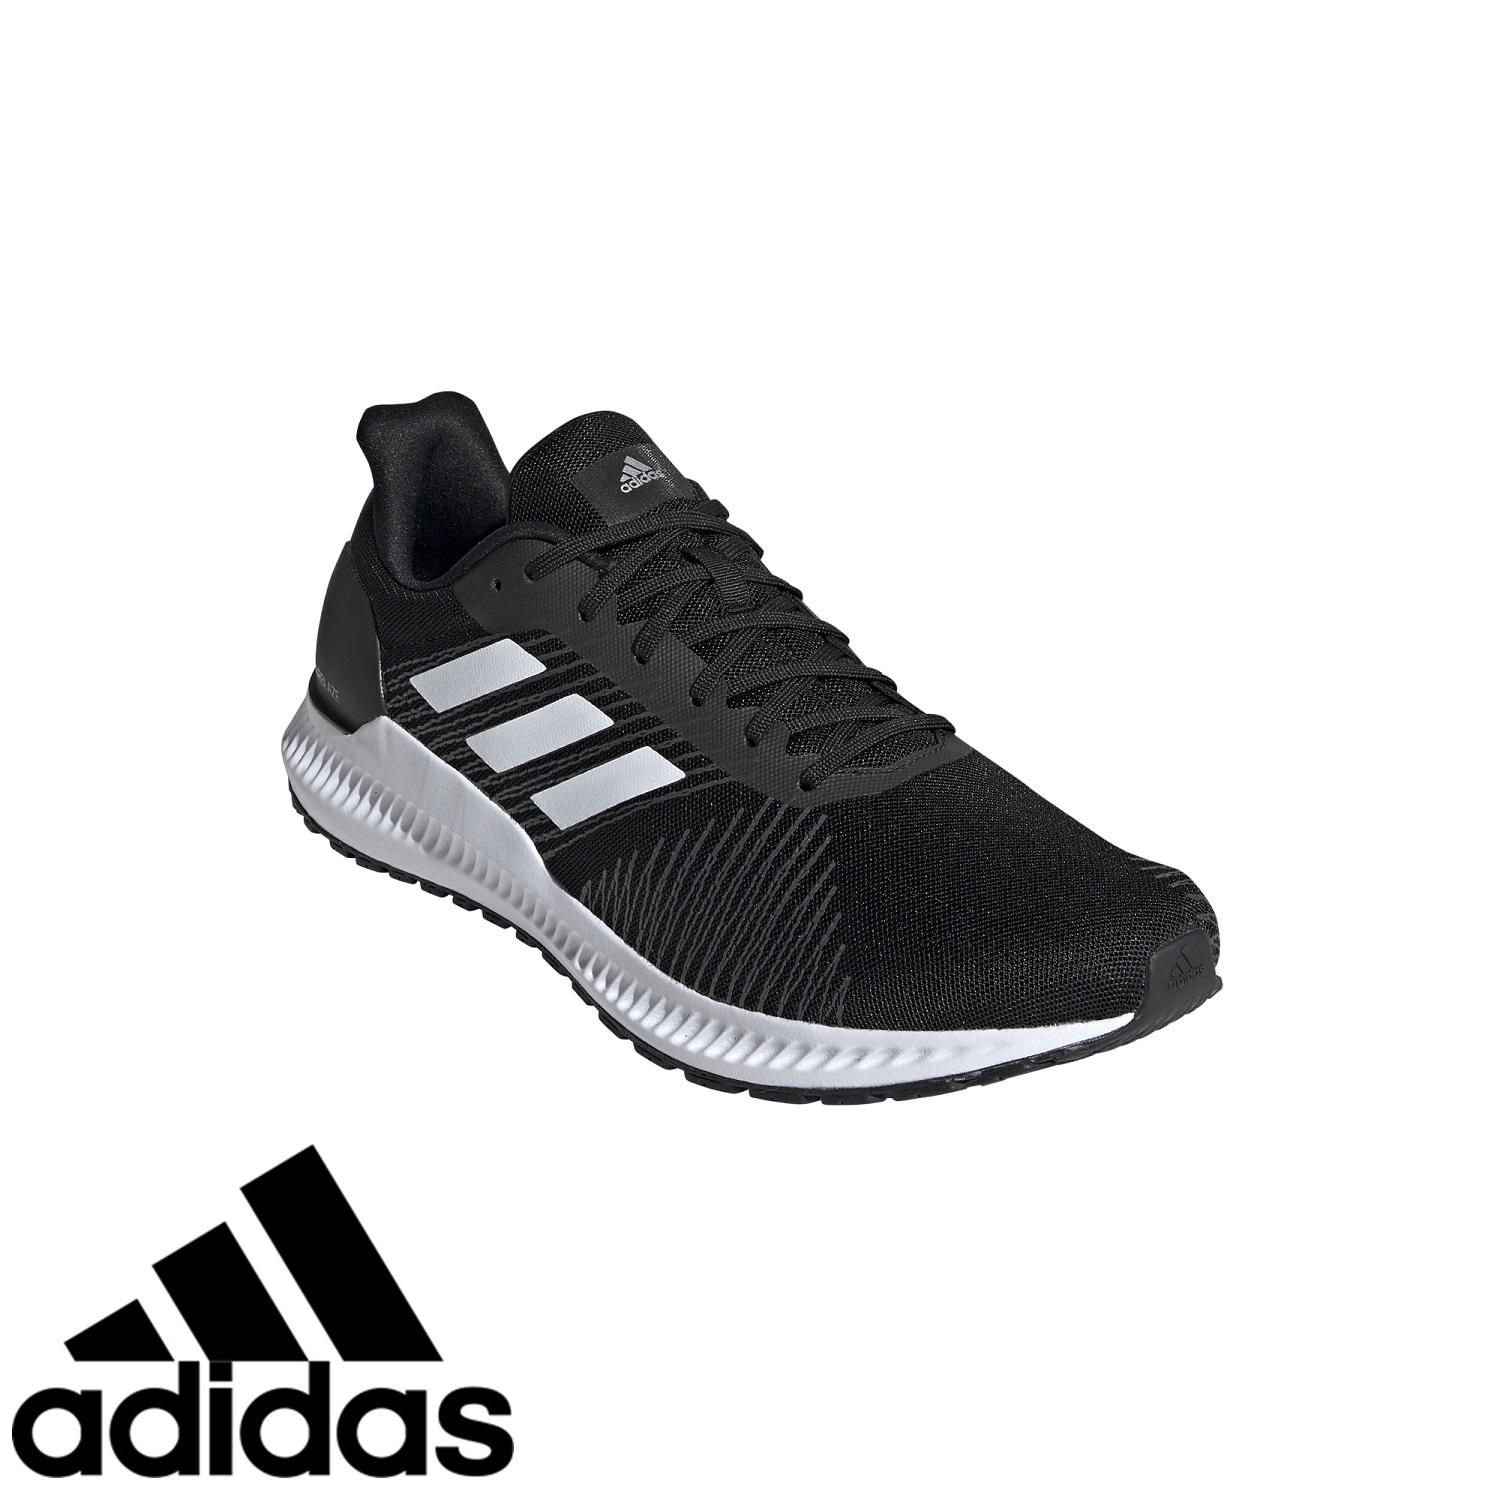 44c618484 Running Shoes for Men for sale - Mens Running Shoes online brands ...